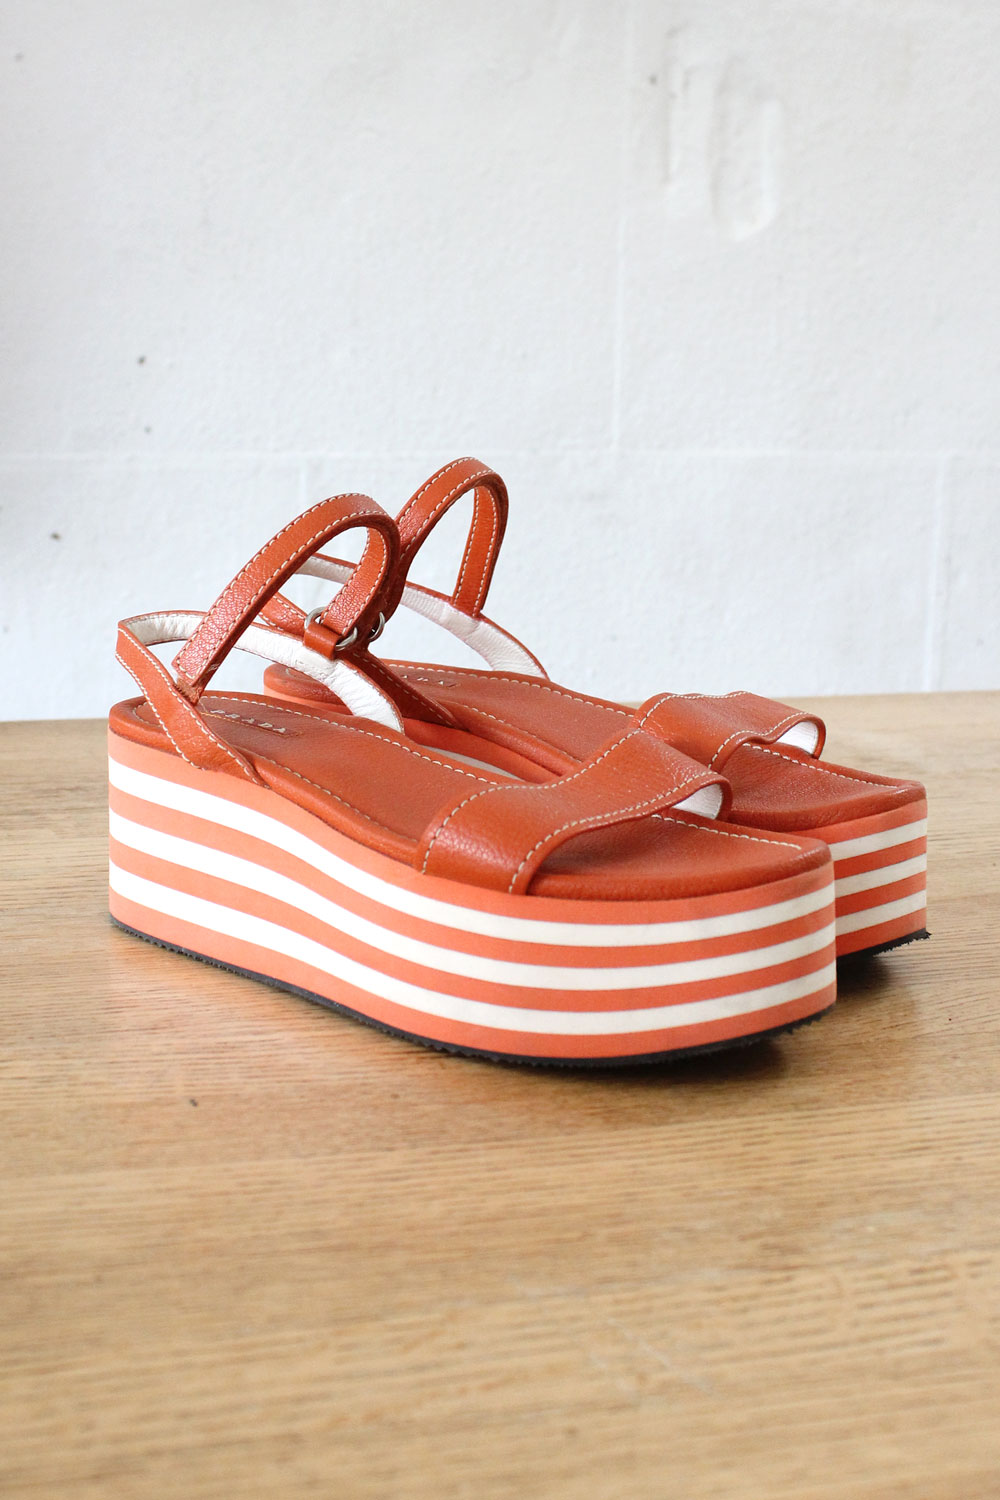 Prada Striped Flatforms 8